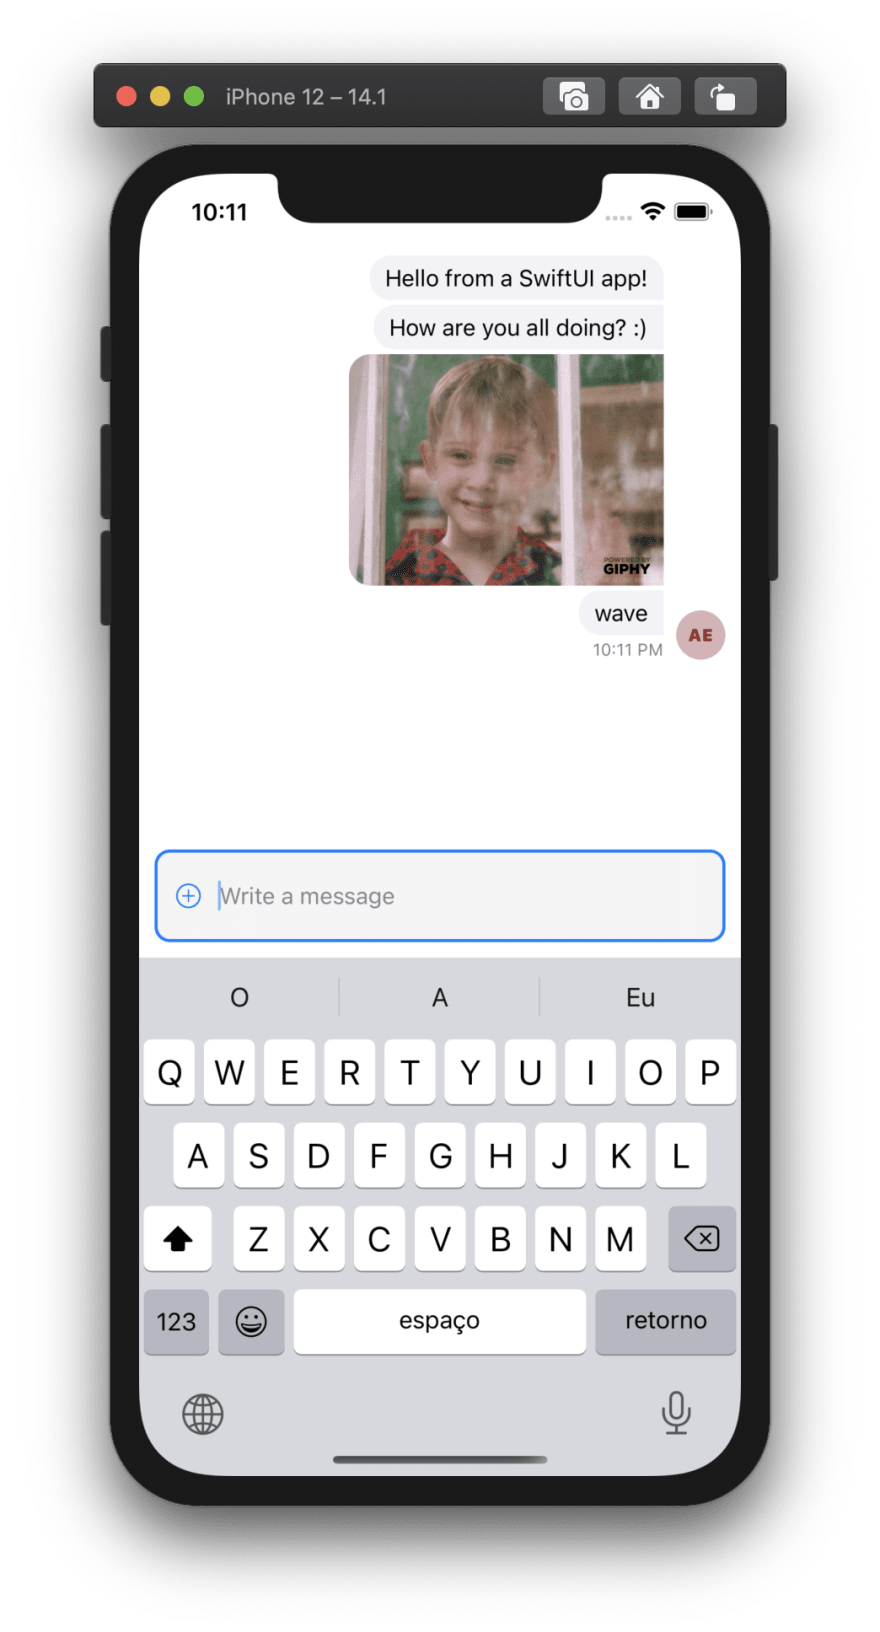 Image shows a chat screen running inside a SwiftUI app